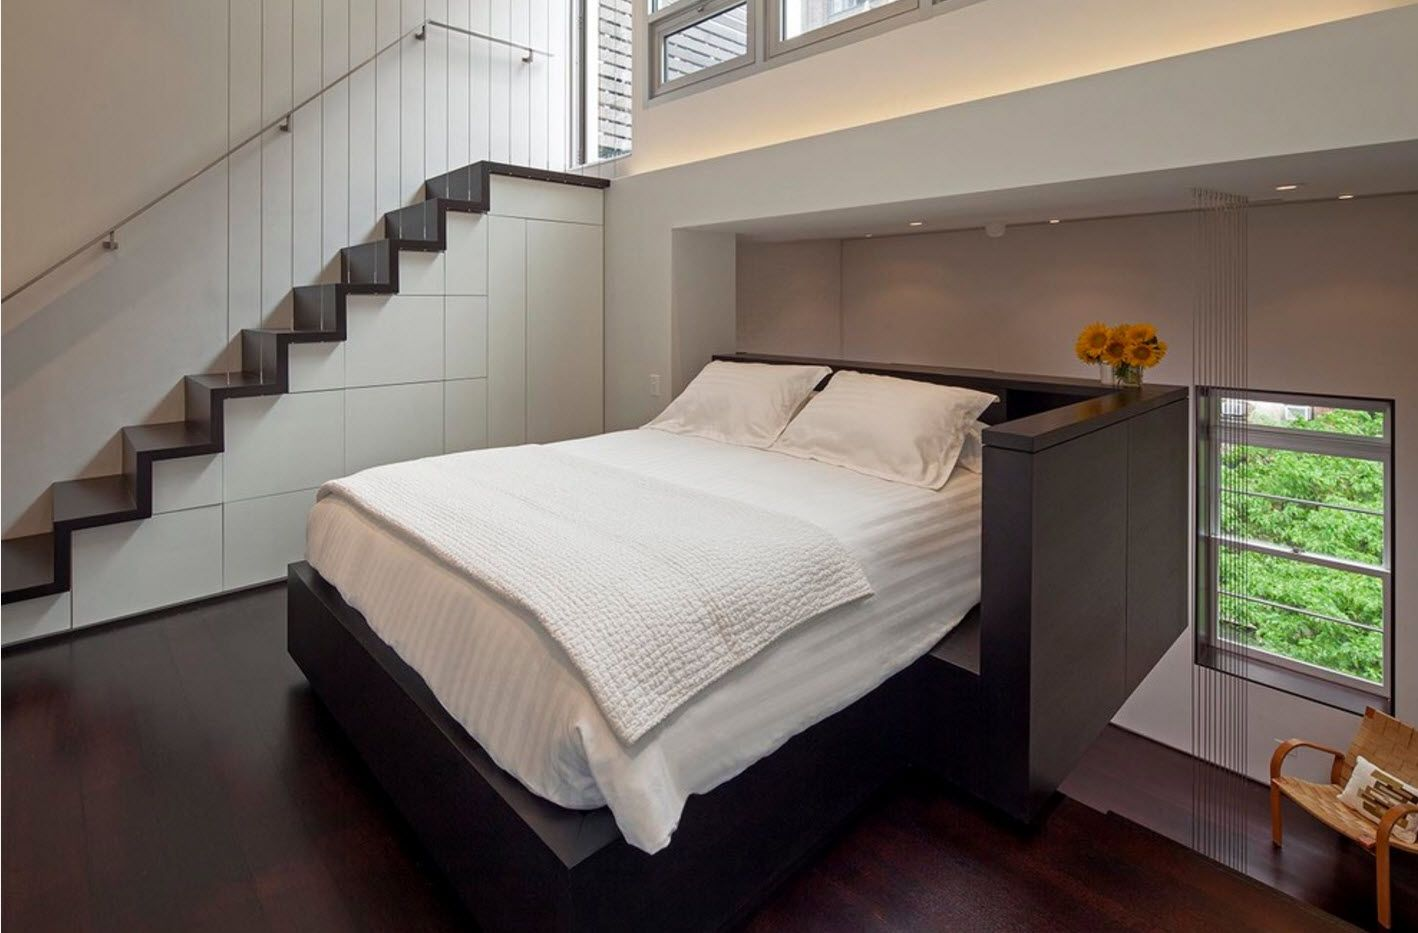 Apartment Interior Design Inspiration Ideas & Trends 2017. Open layout studio with bed space near the stairs